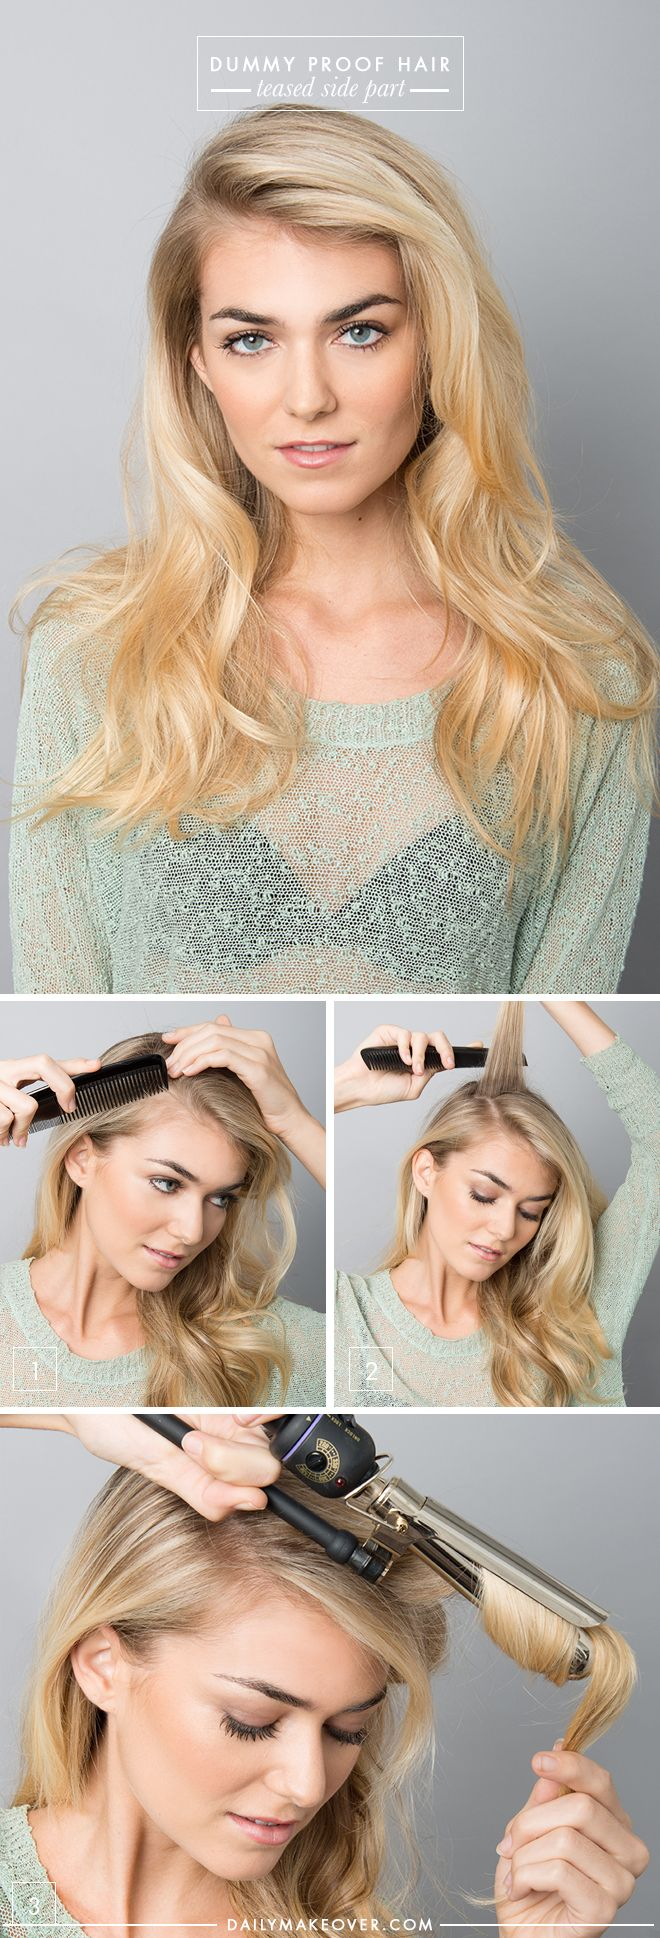 dummy proof hairstyles that everyone can master hair style and